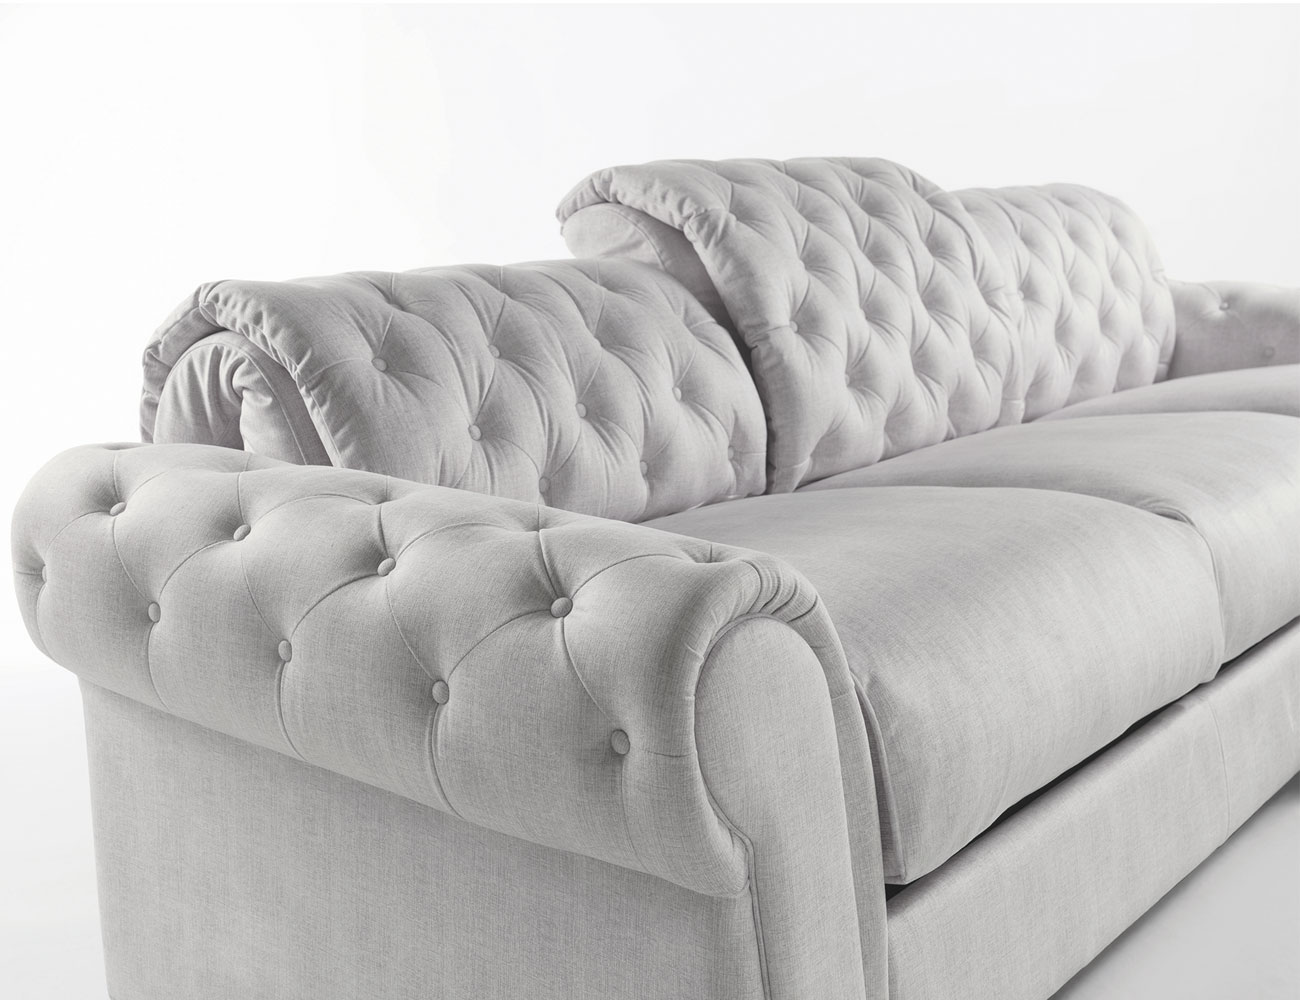 Sofa chaiselongue gran lujo decorativo capitone blanco tela 118